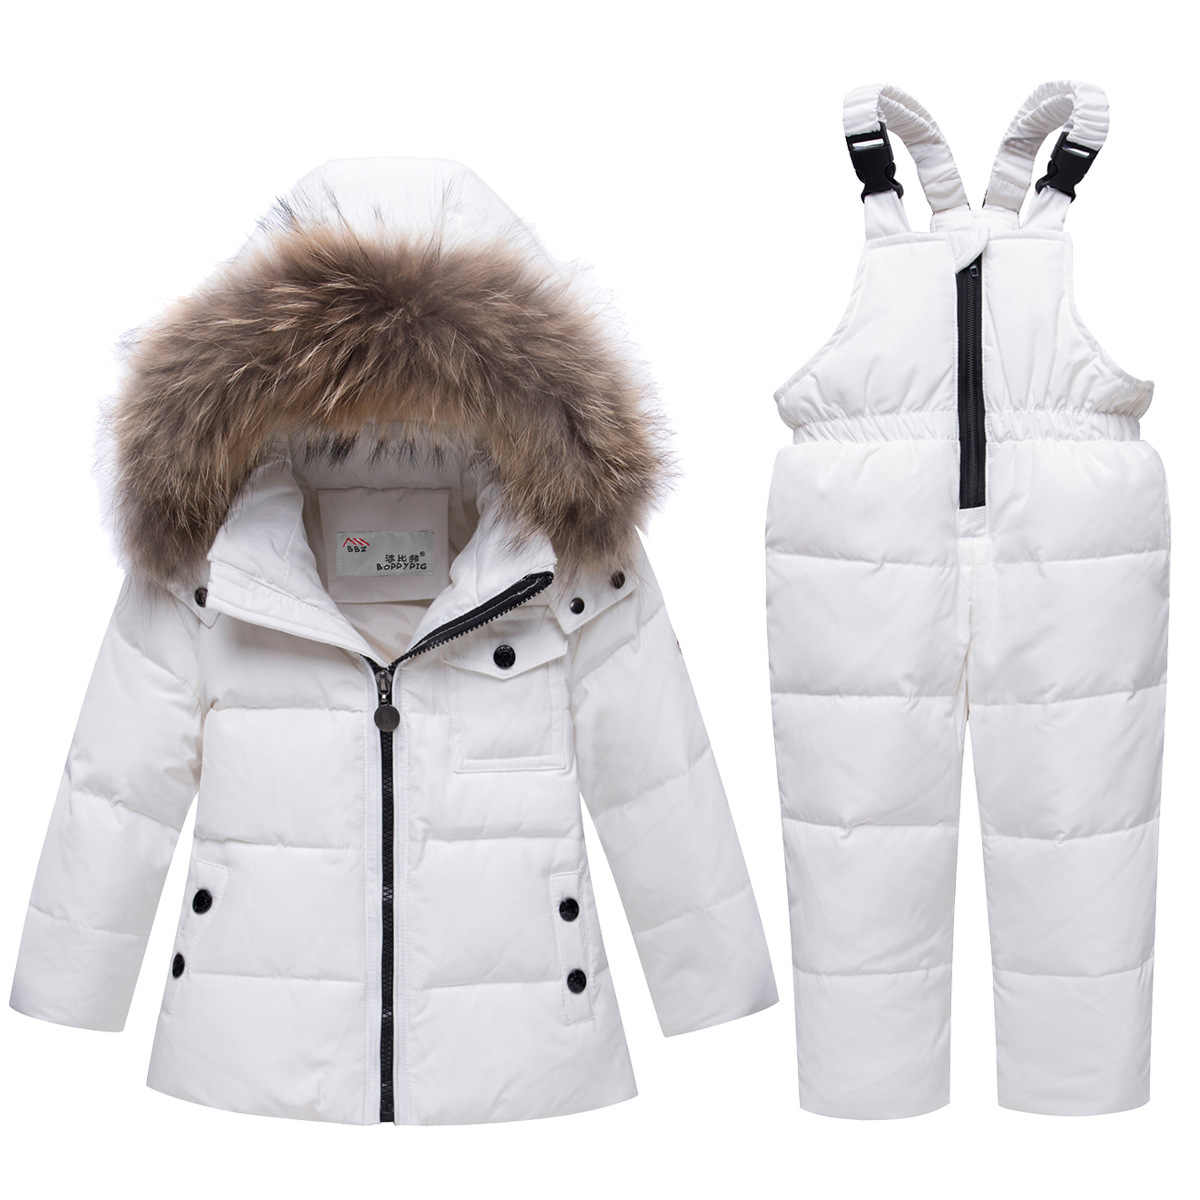 487151247 Detail Feedback Questions about Russian Winter Suits for Boys Girls ...